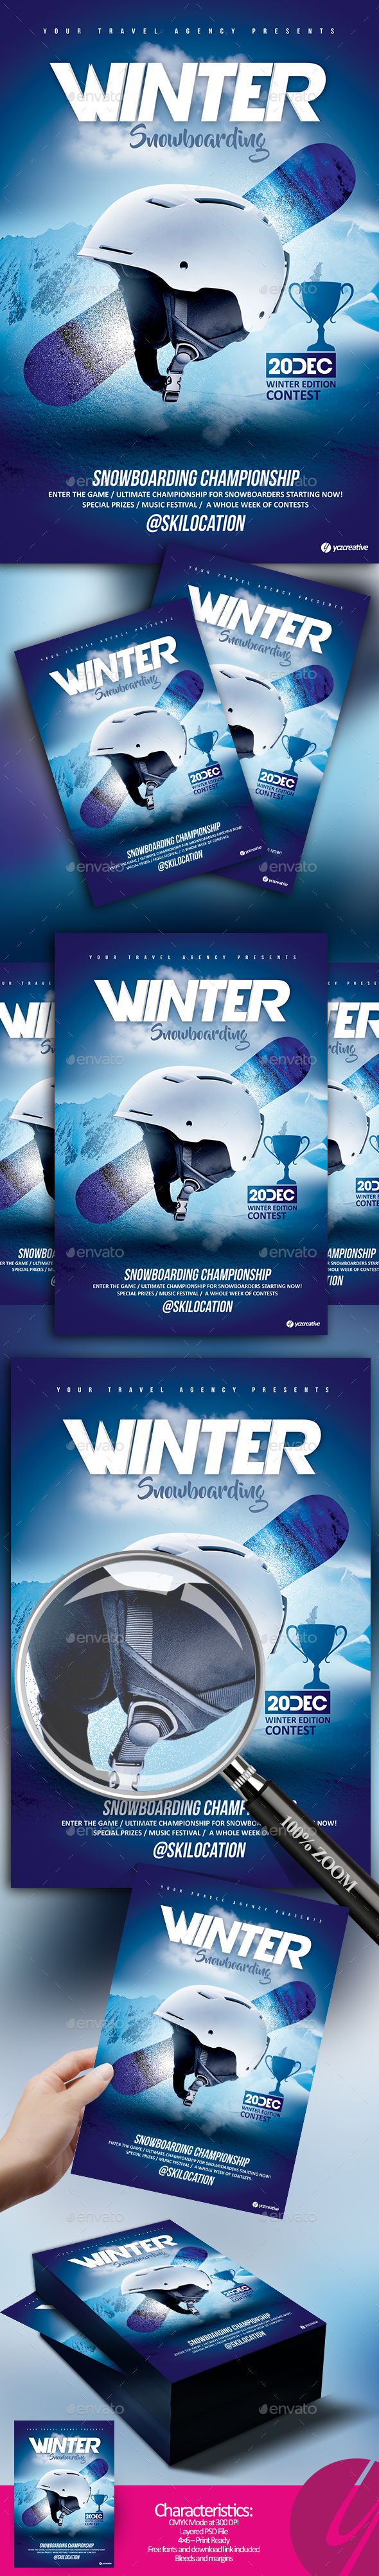 Winter Snowboarding Contest - Sports Events